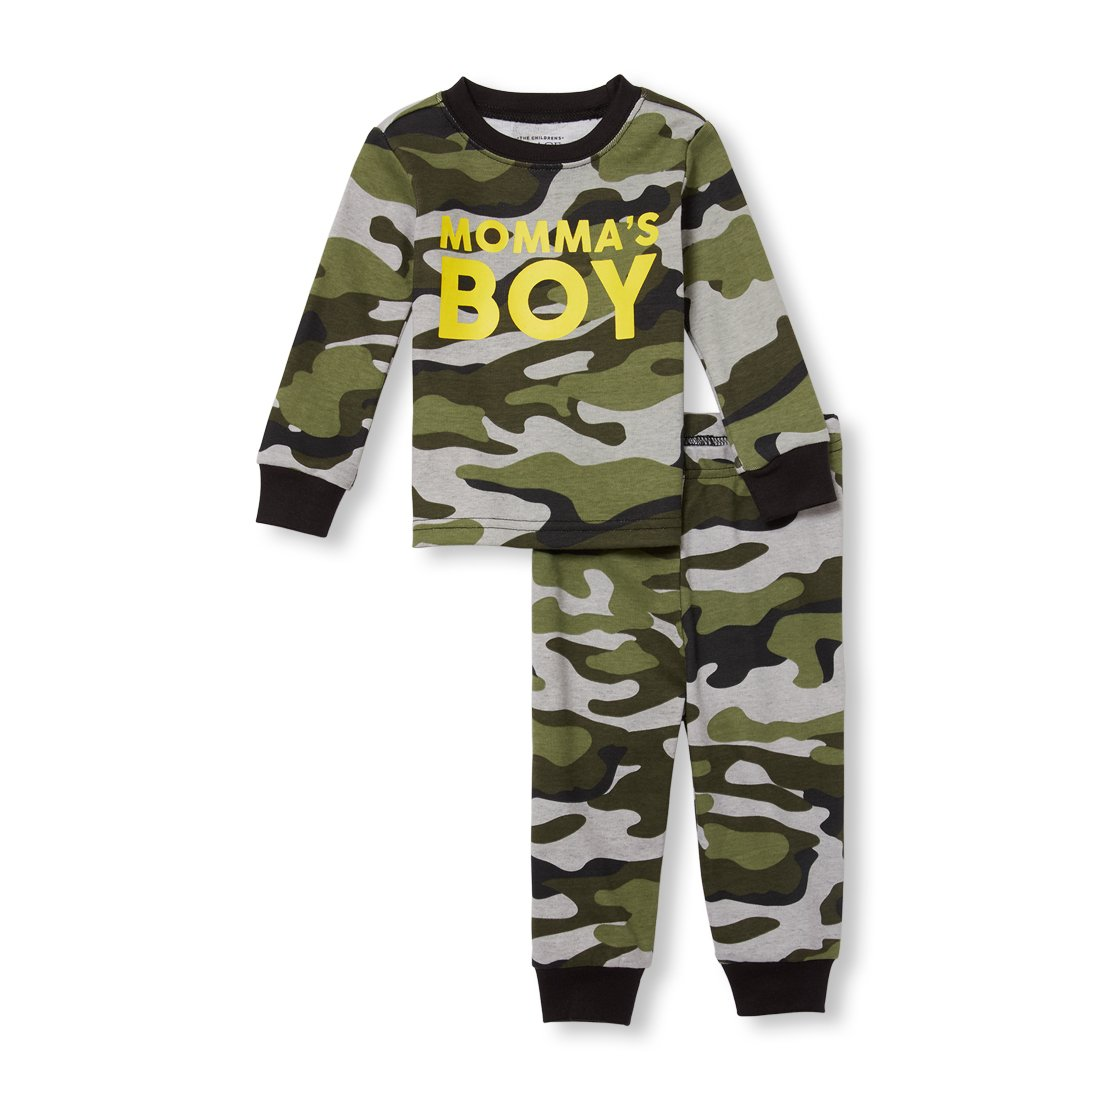 The Children's Place Baby Boys 2 Piece Long Sleeve Pajama Set The Children' s Place